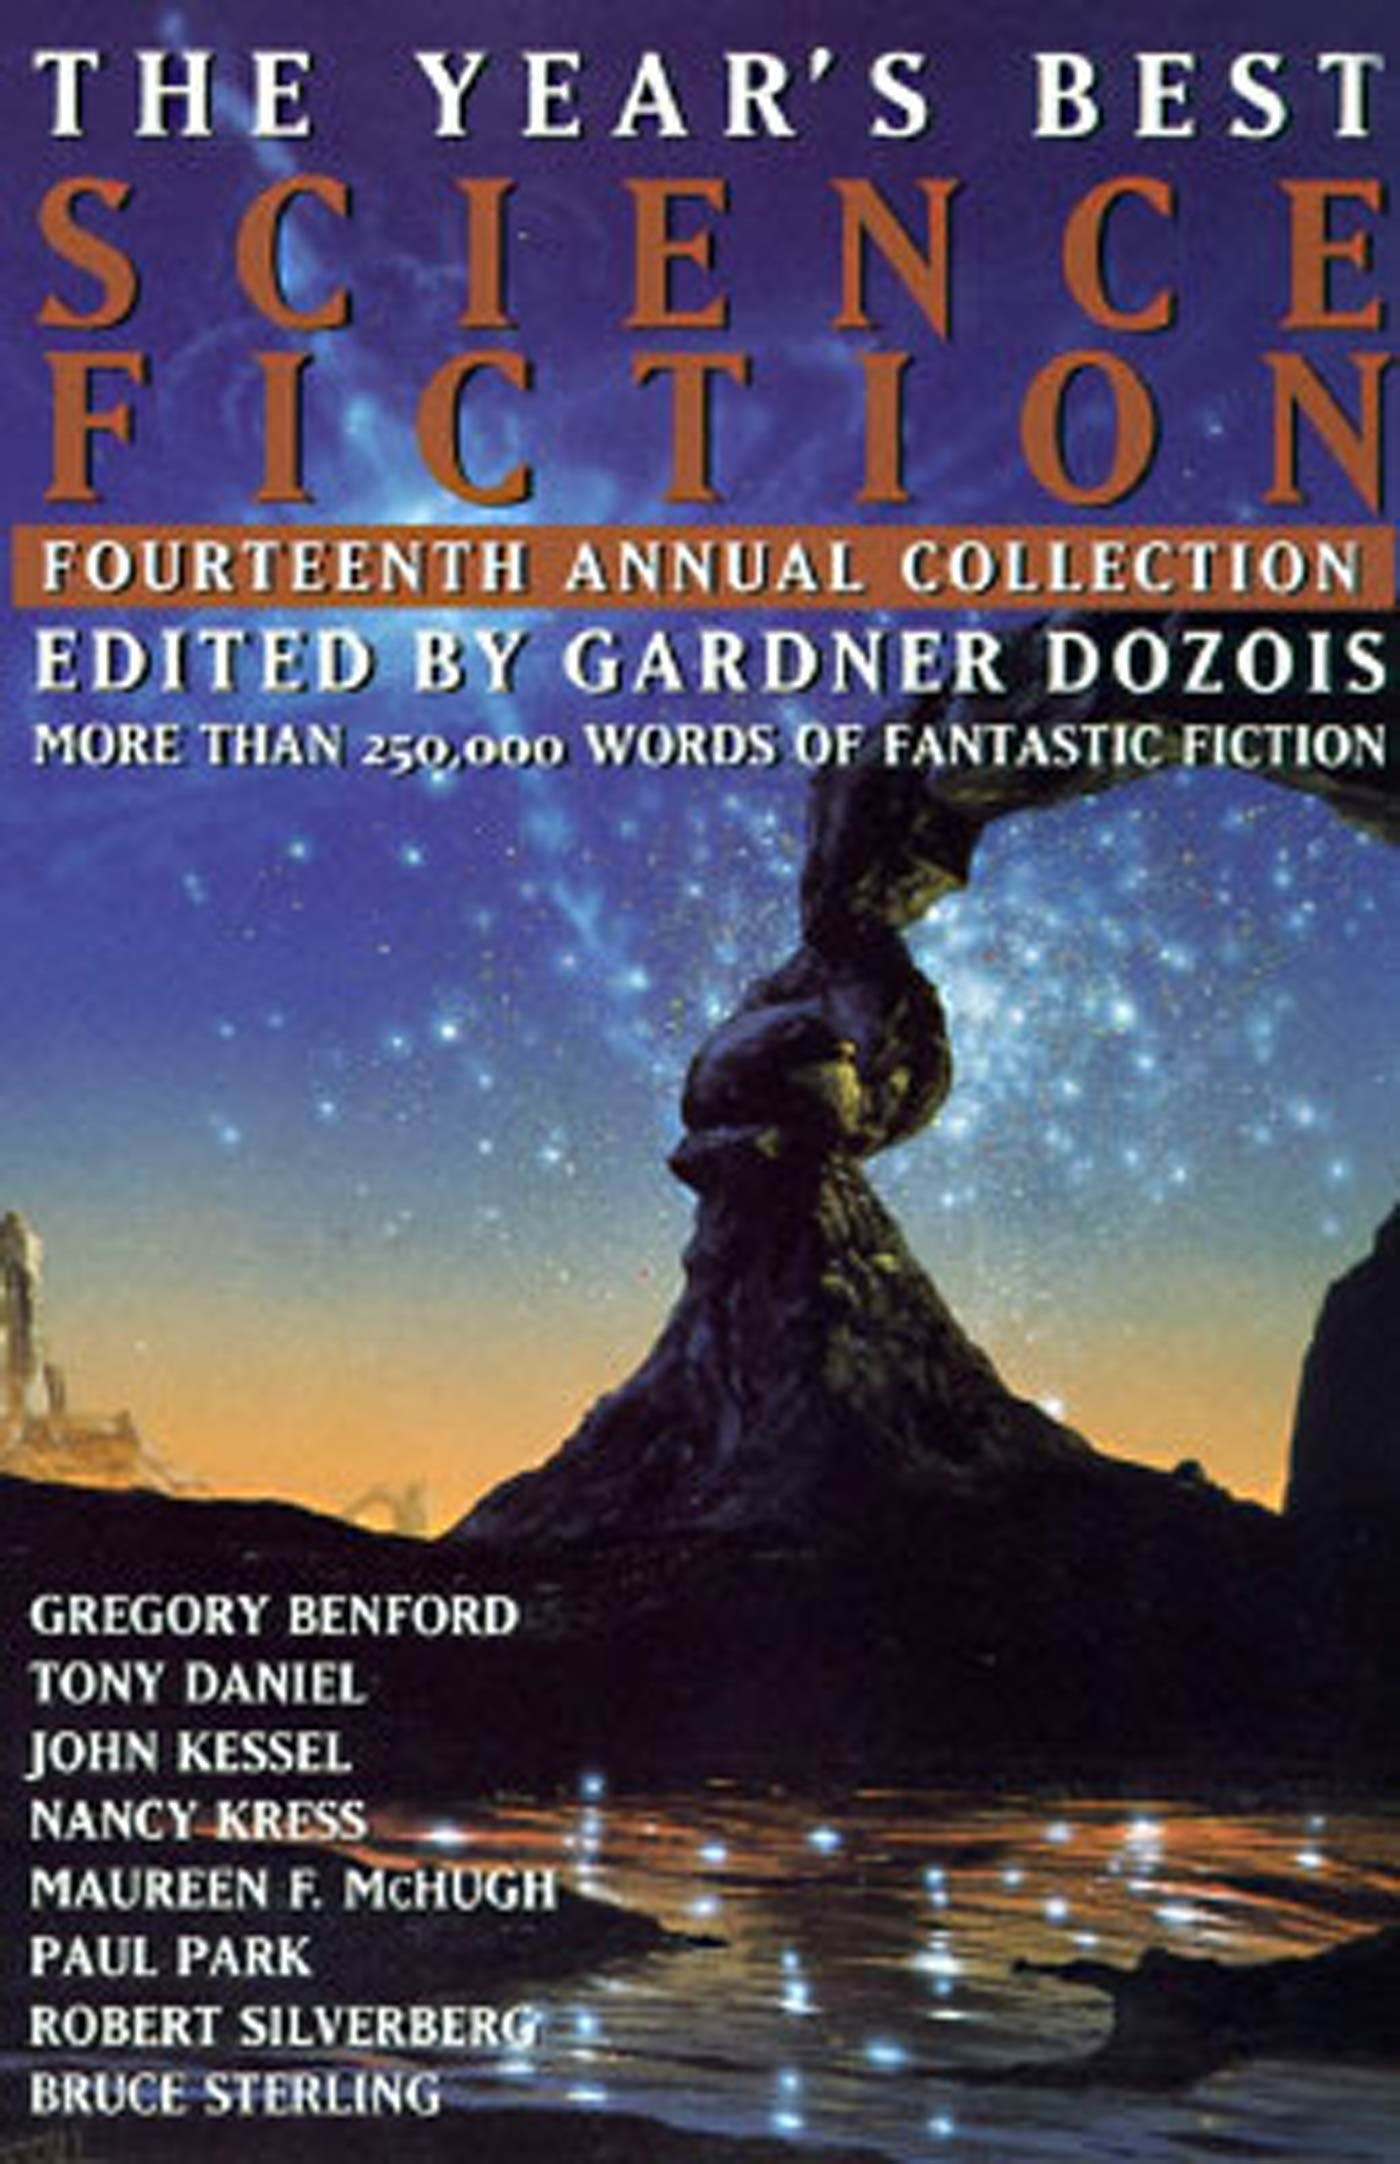 Image of The Year's Best Science Fiction: Fourteenth Annual Collection